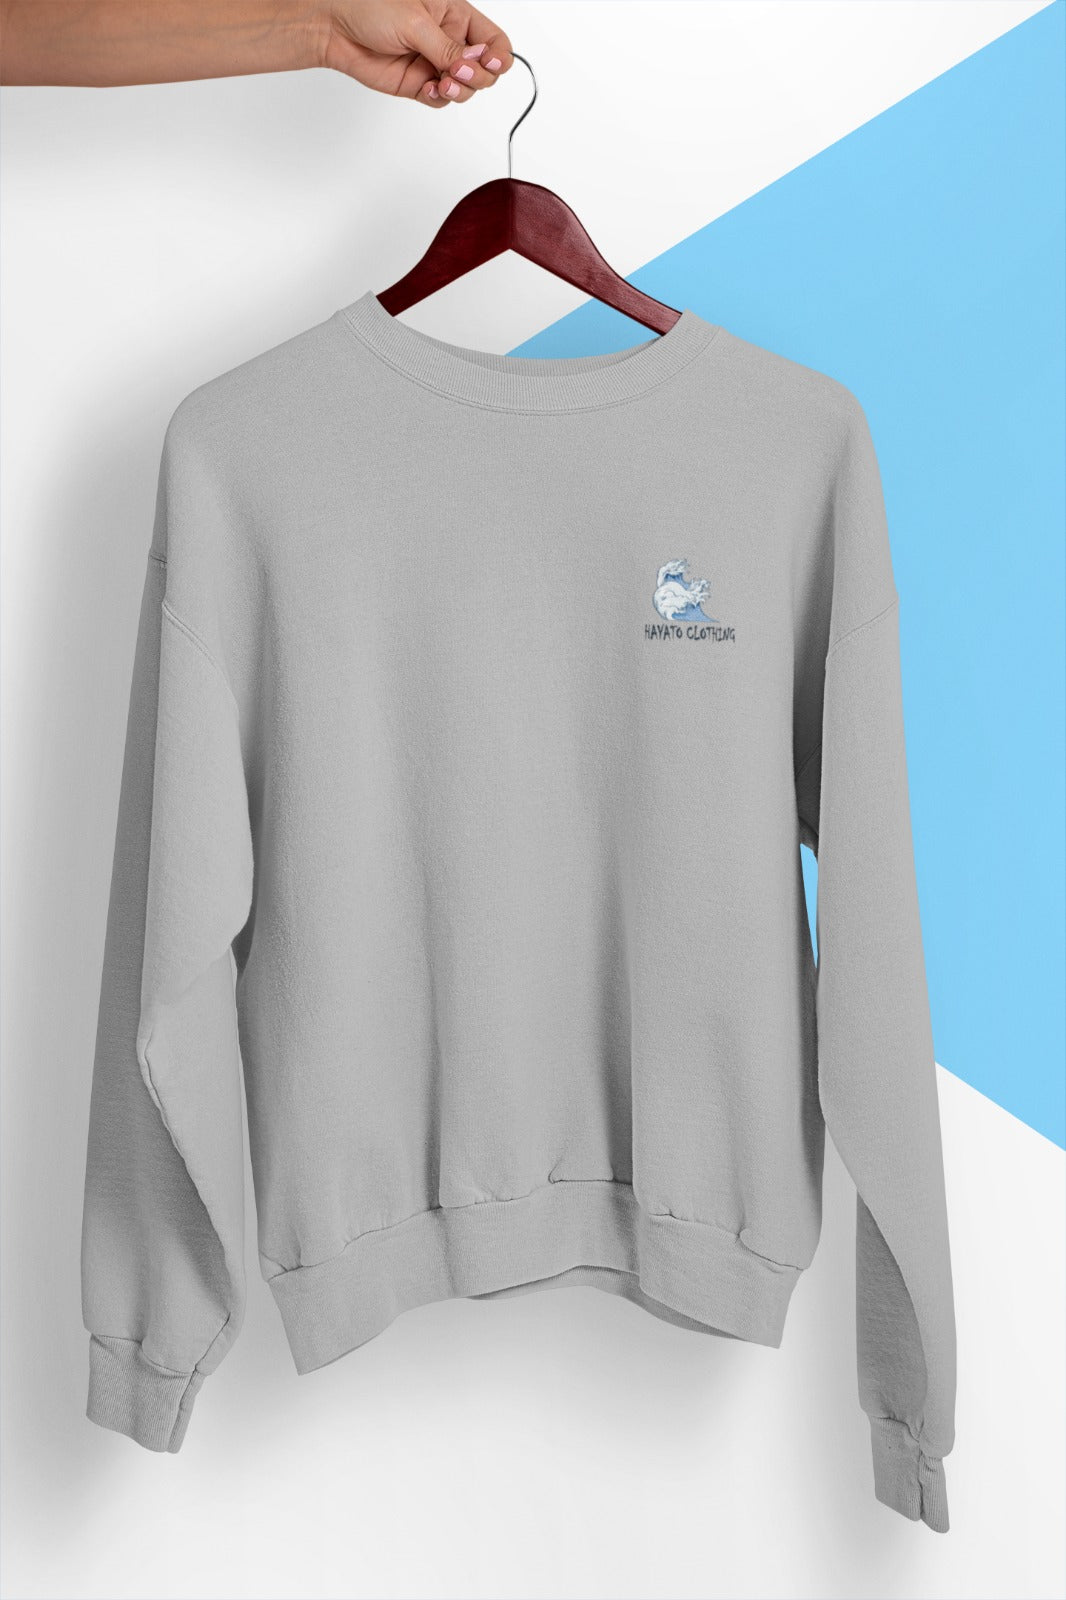 HAYATO - Cozy Wave Sport Grey Sweatshirt - HayatoClothing